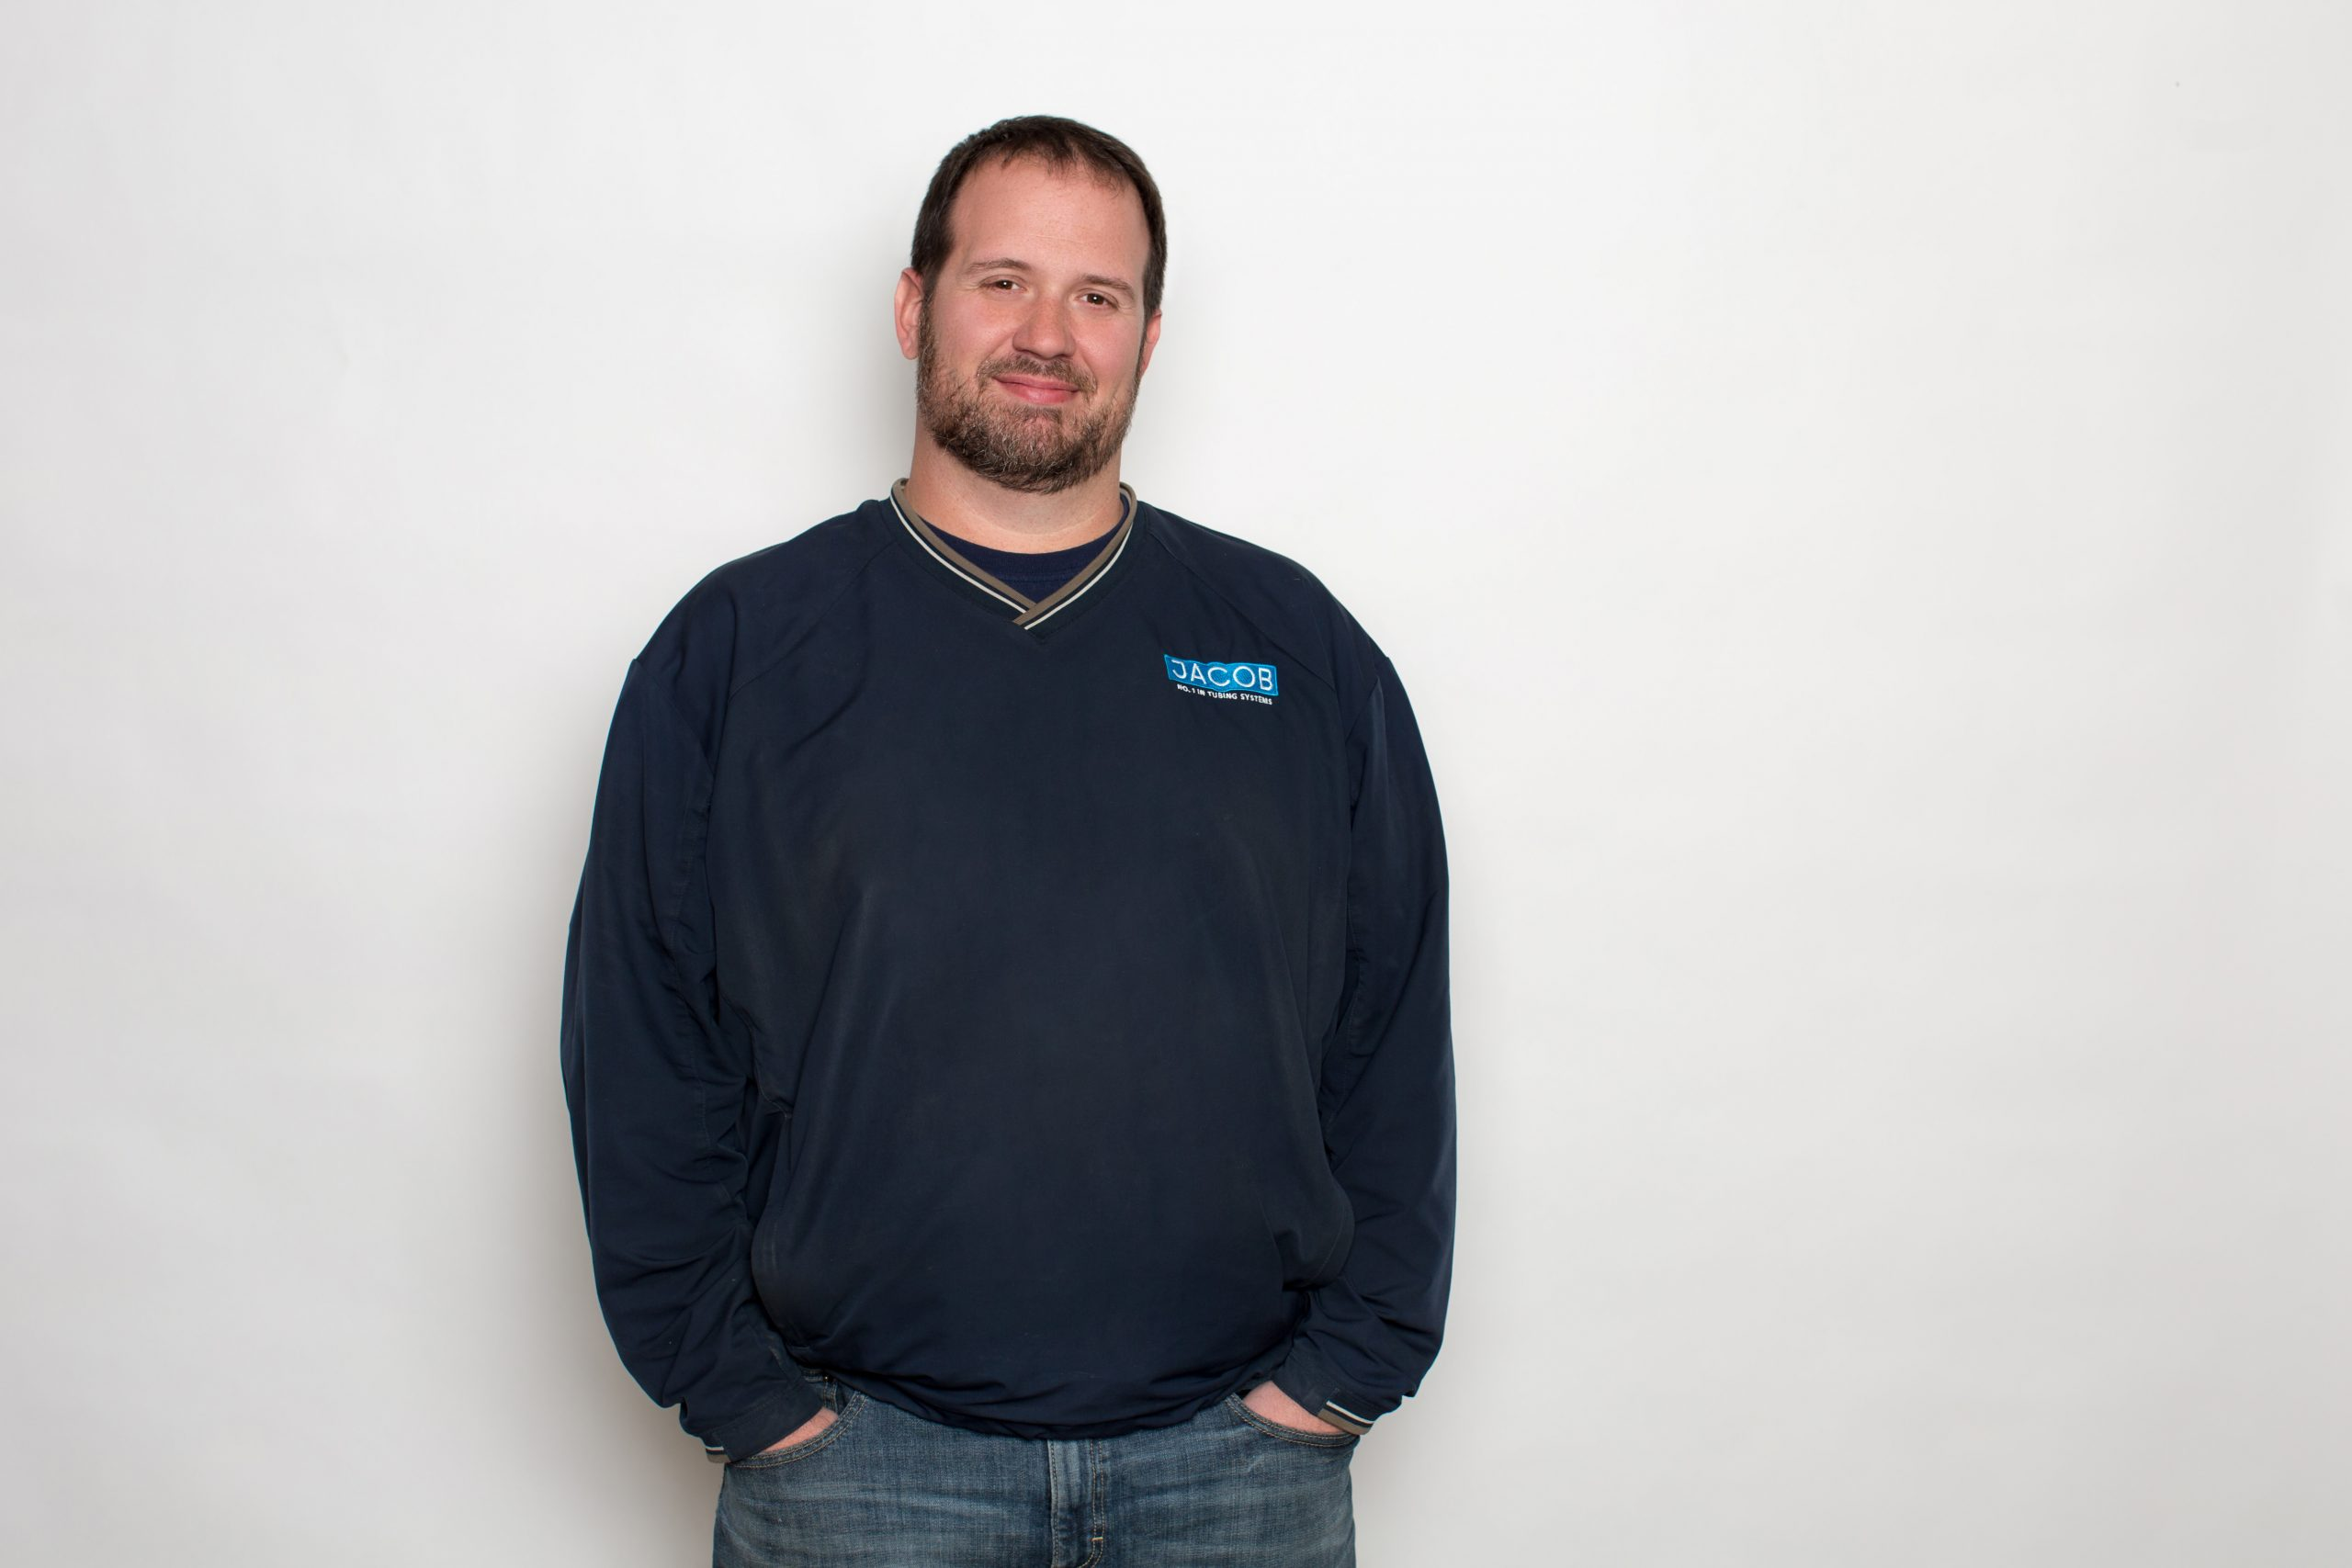 Mike Mason - Operations Manager